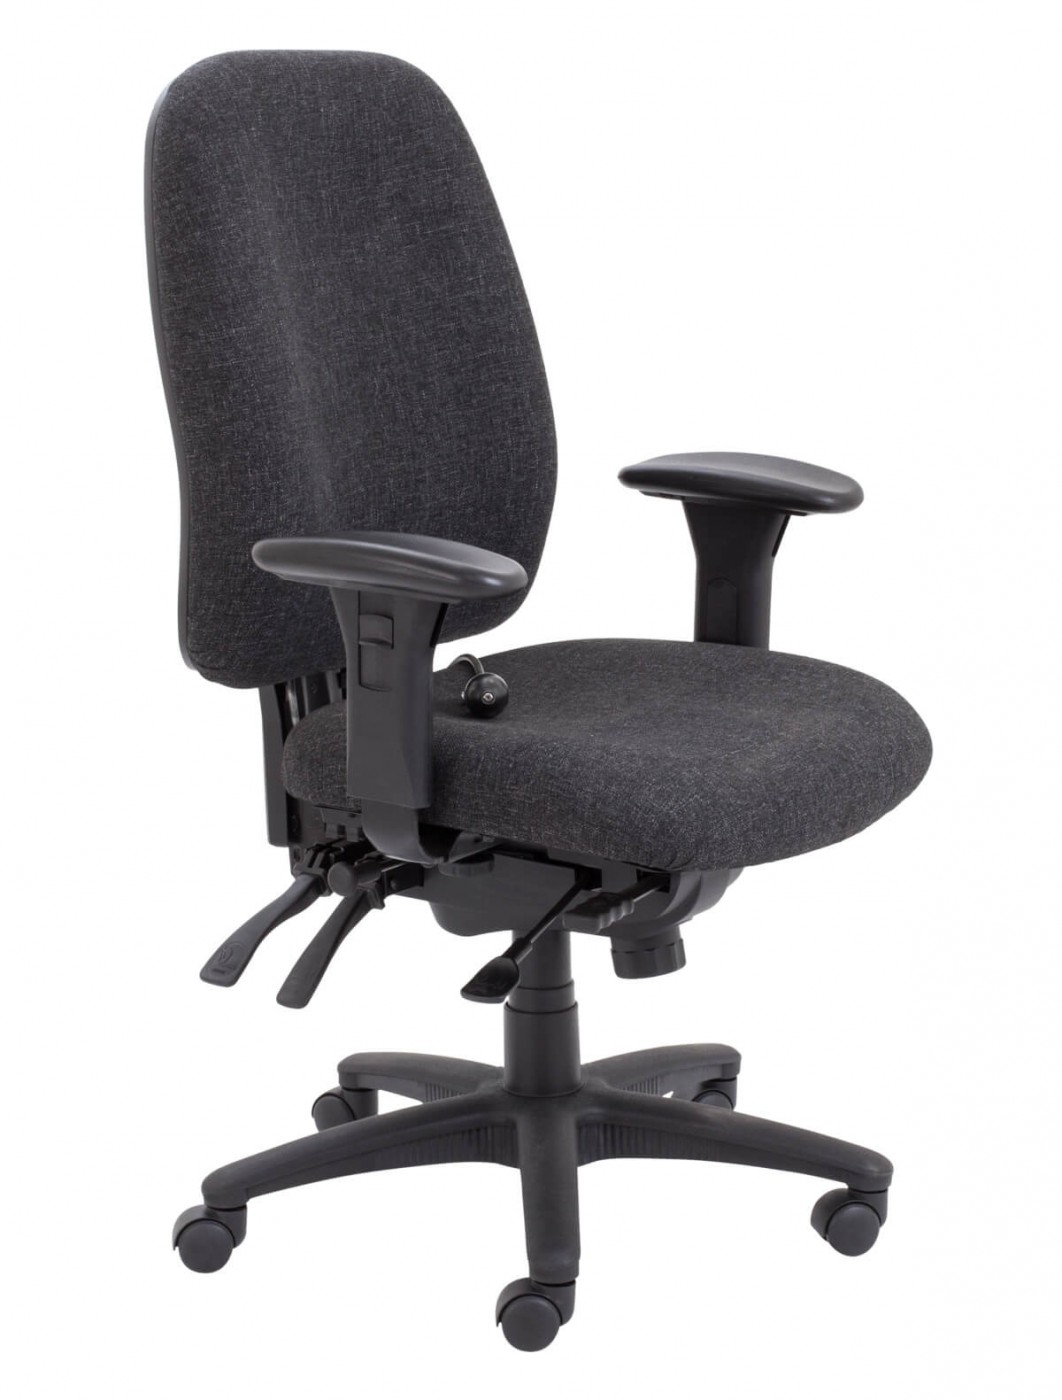 desk chair fabric cover rentals mobile al office chairs vista ch0903ch 121